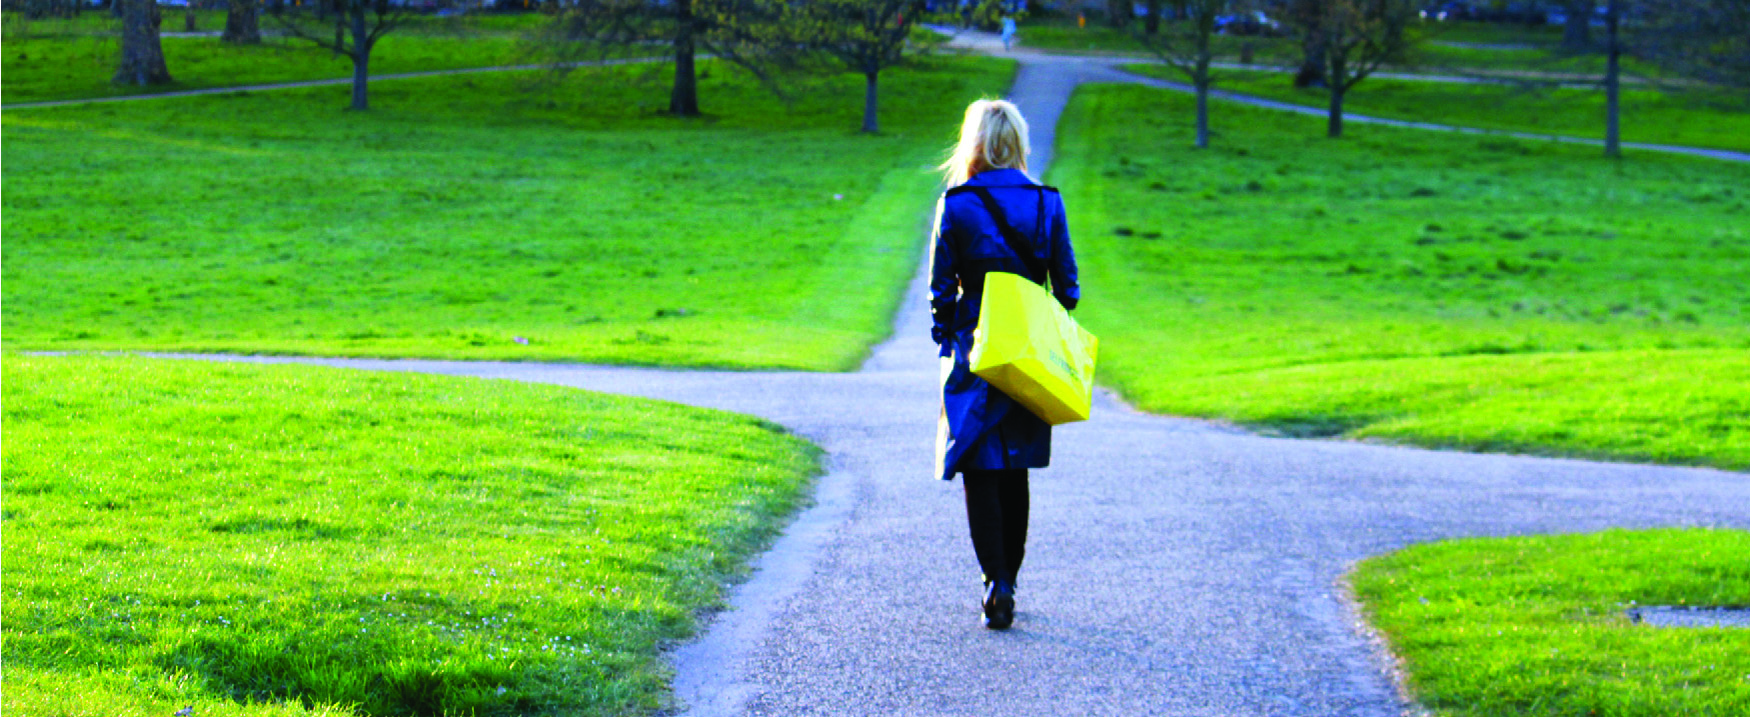 A photograph of a woman walking on a path that branches off in different directions.